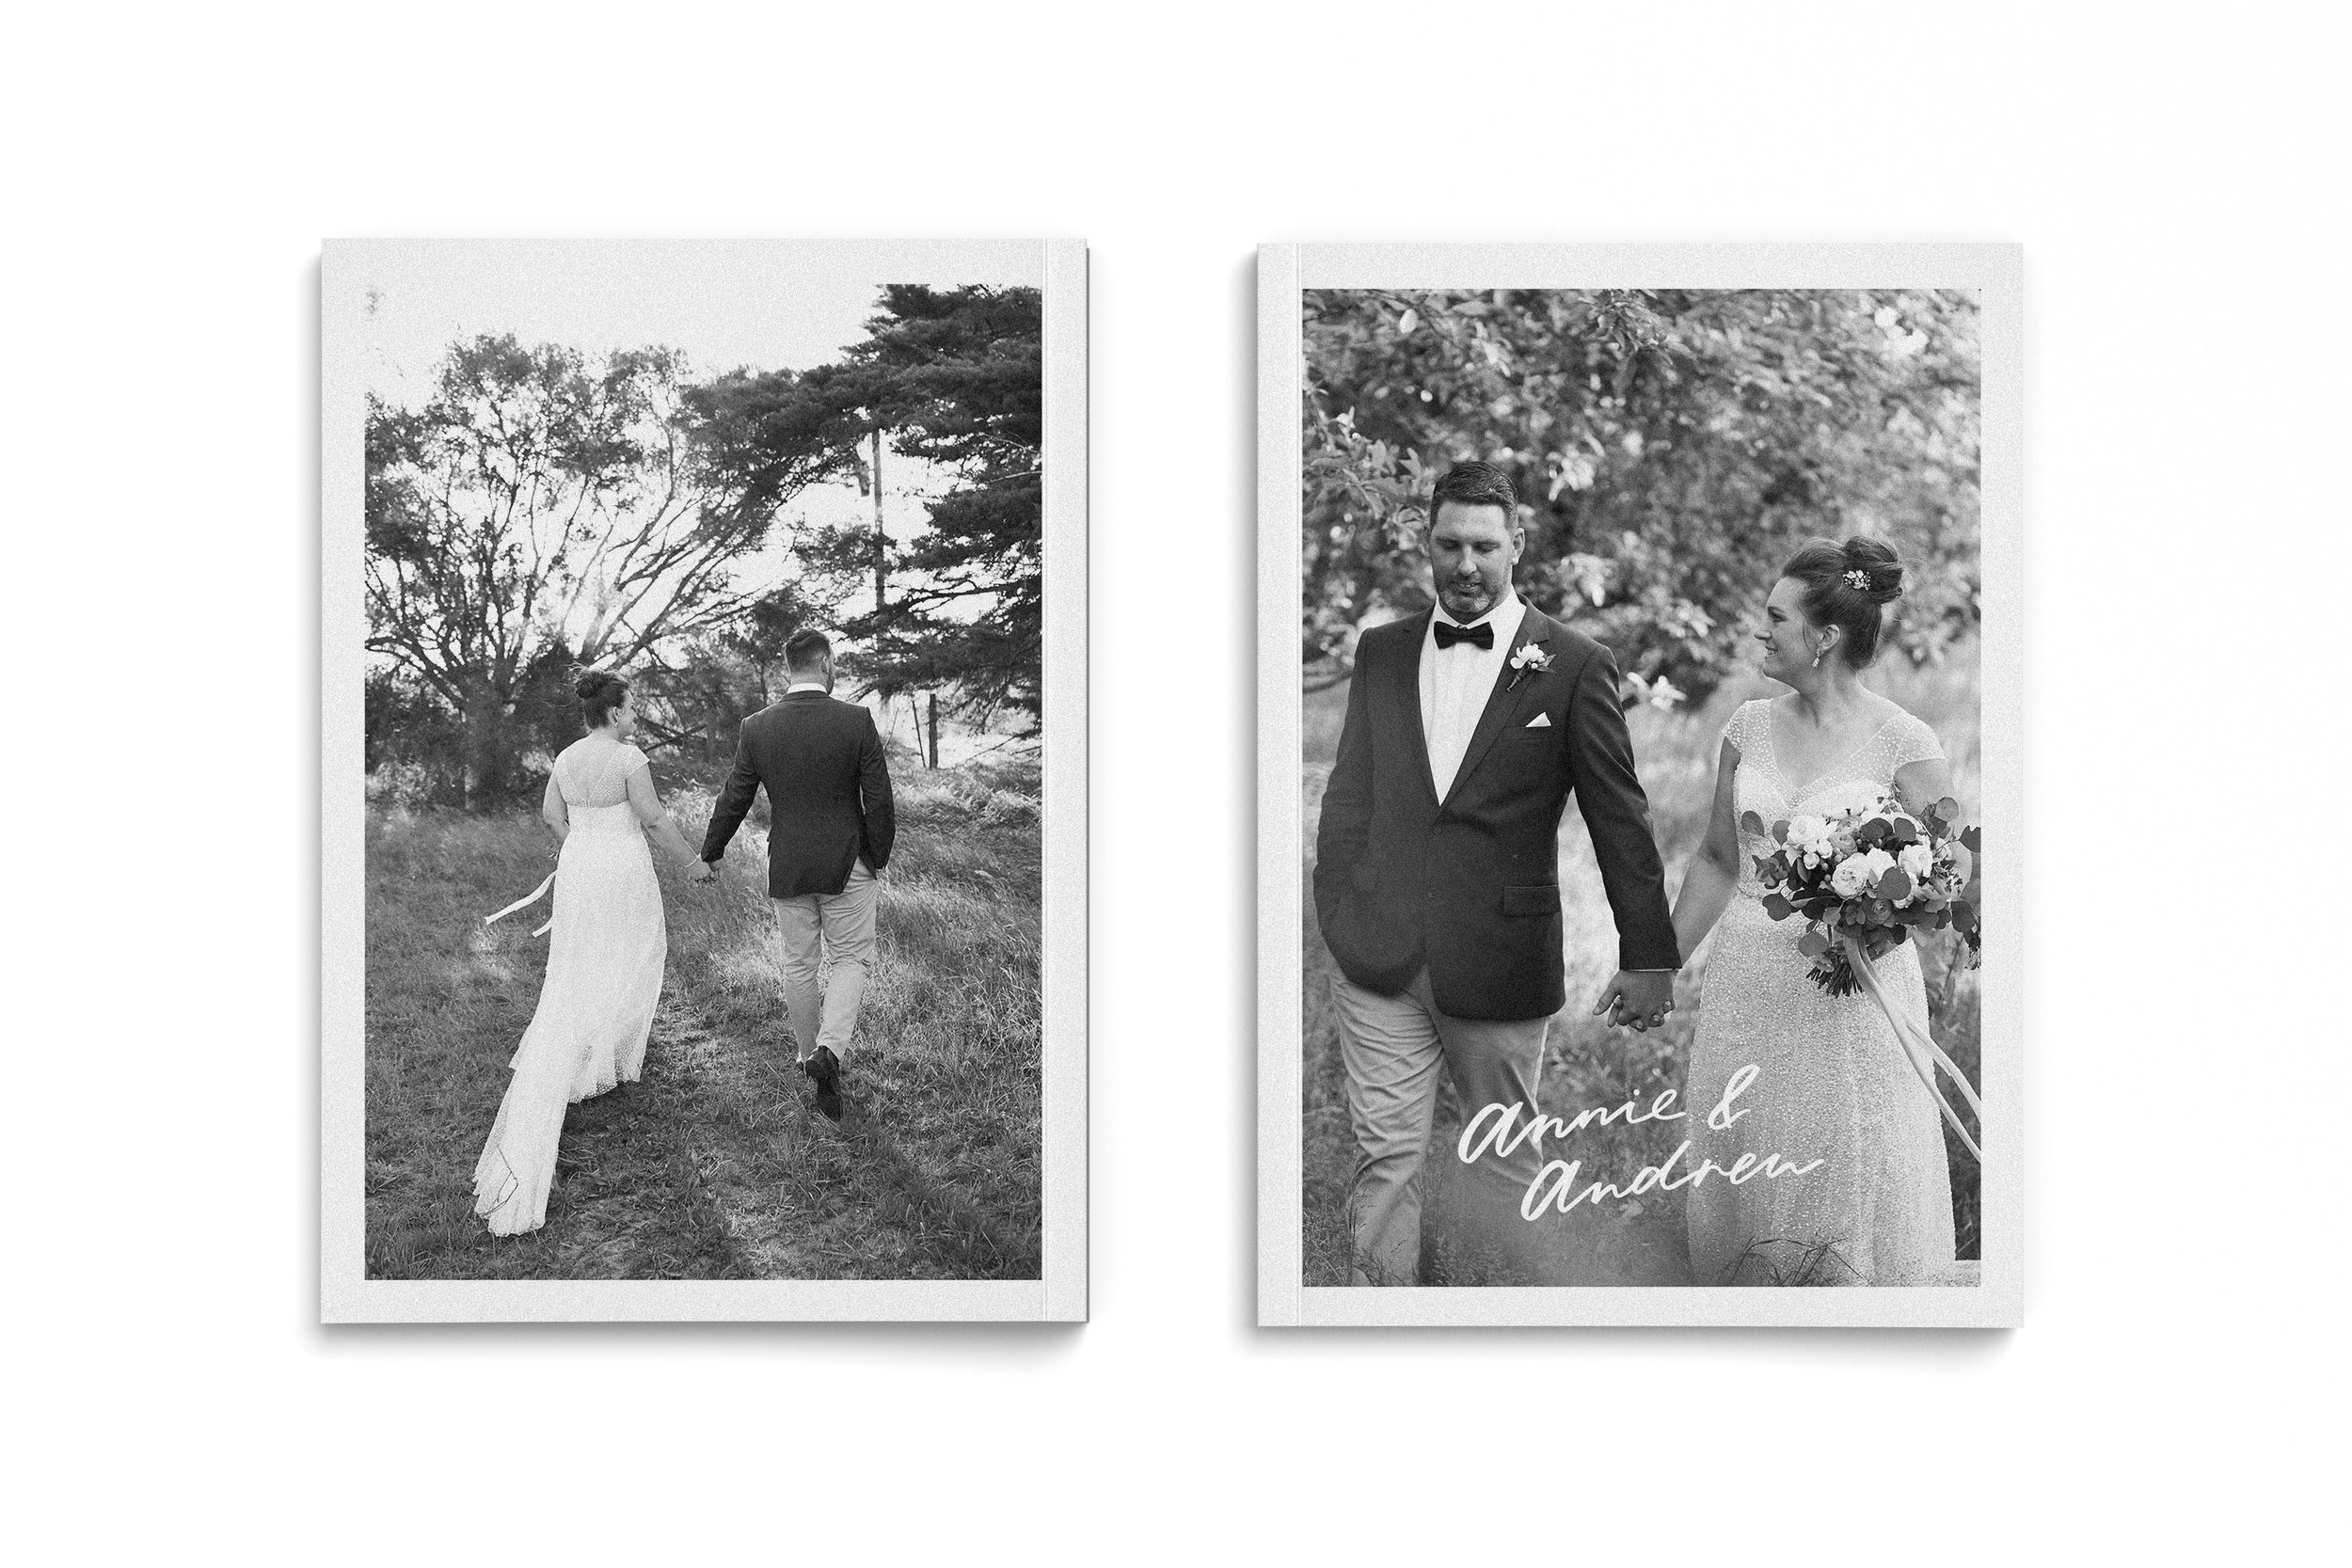 Annie-Andrew-Wedding-Zine-Cover-Front-Back.jpg